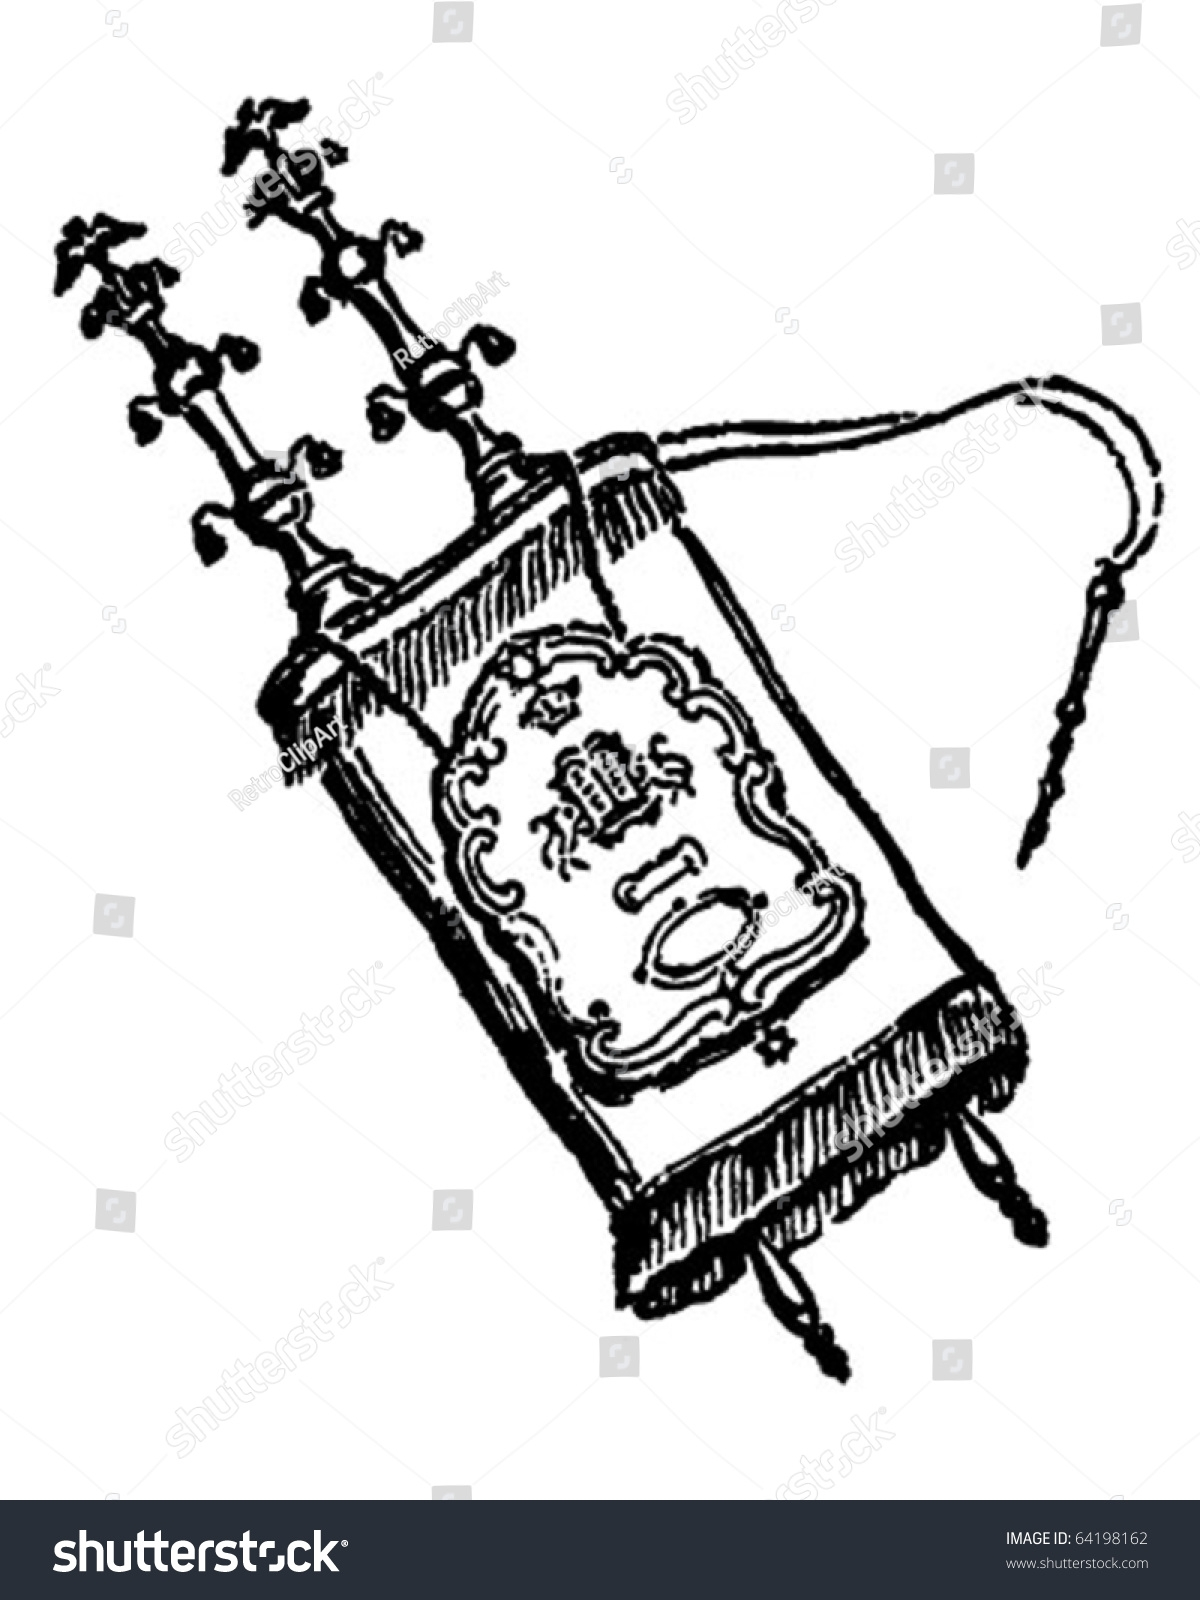 Torah clipart black and white. New design digital collection